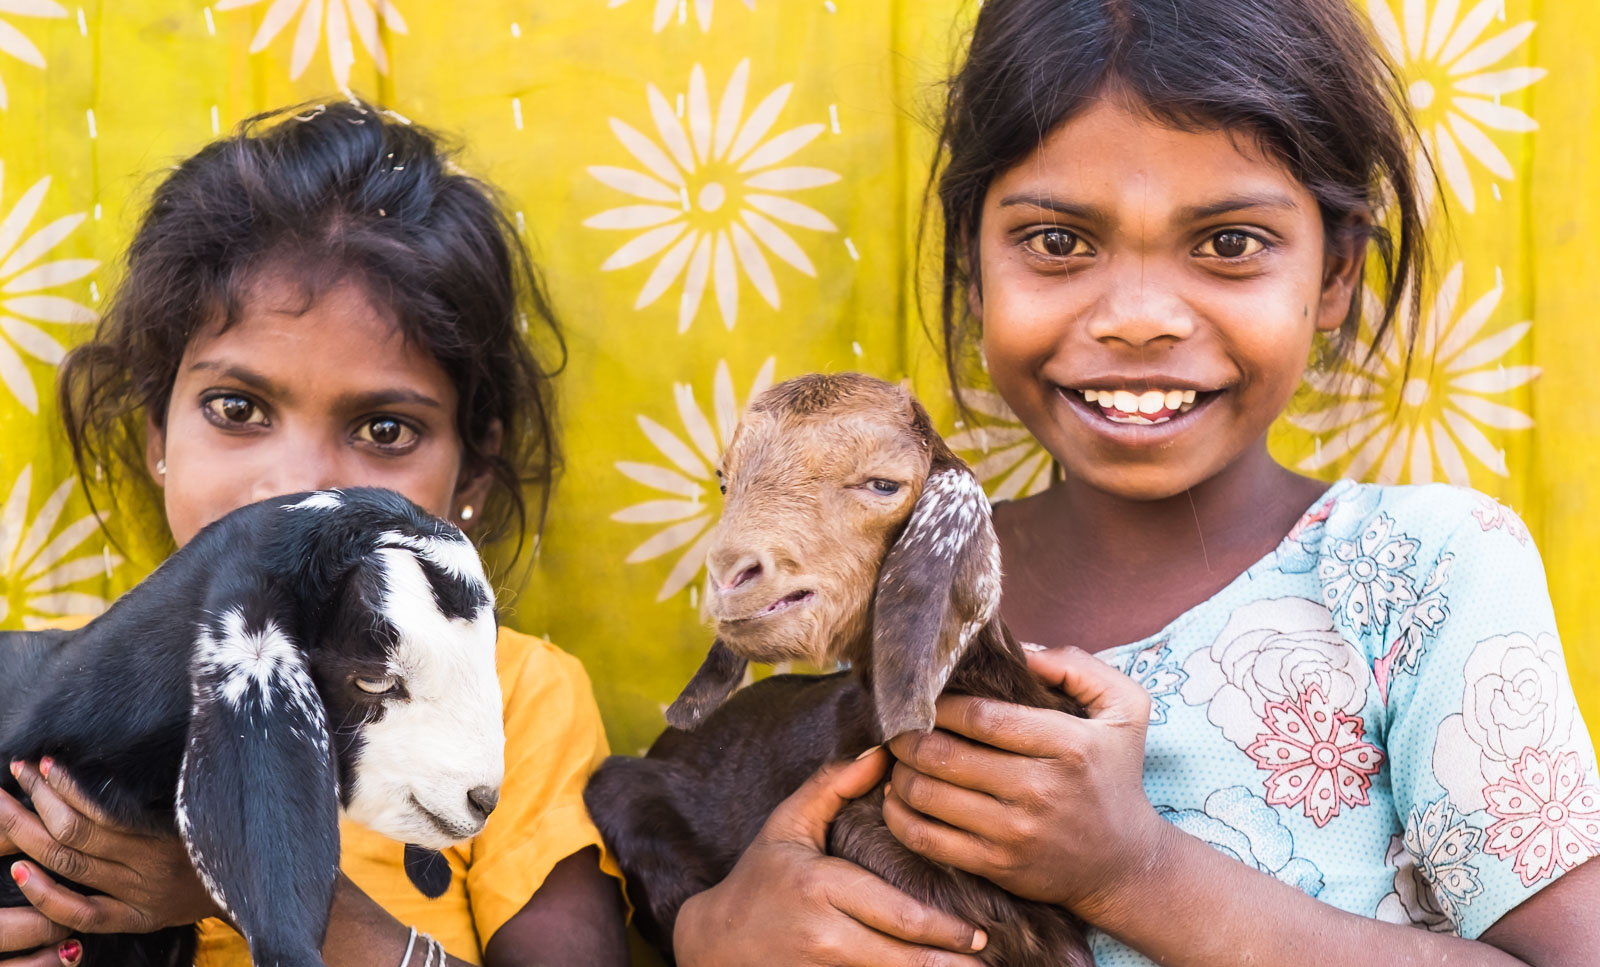 Two pretty smiling girls holding their pet goat.